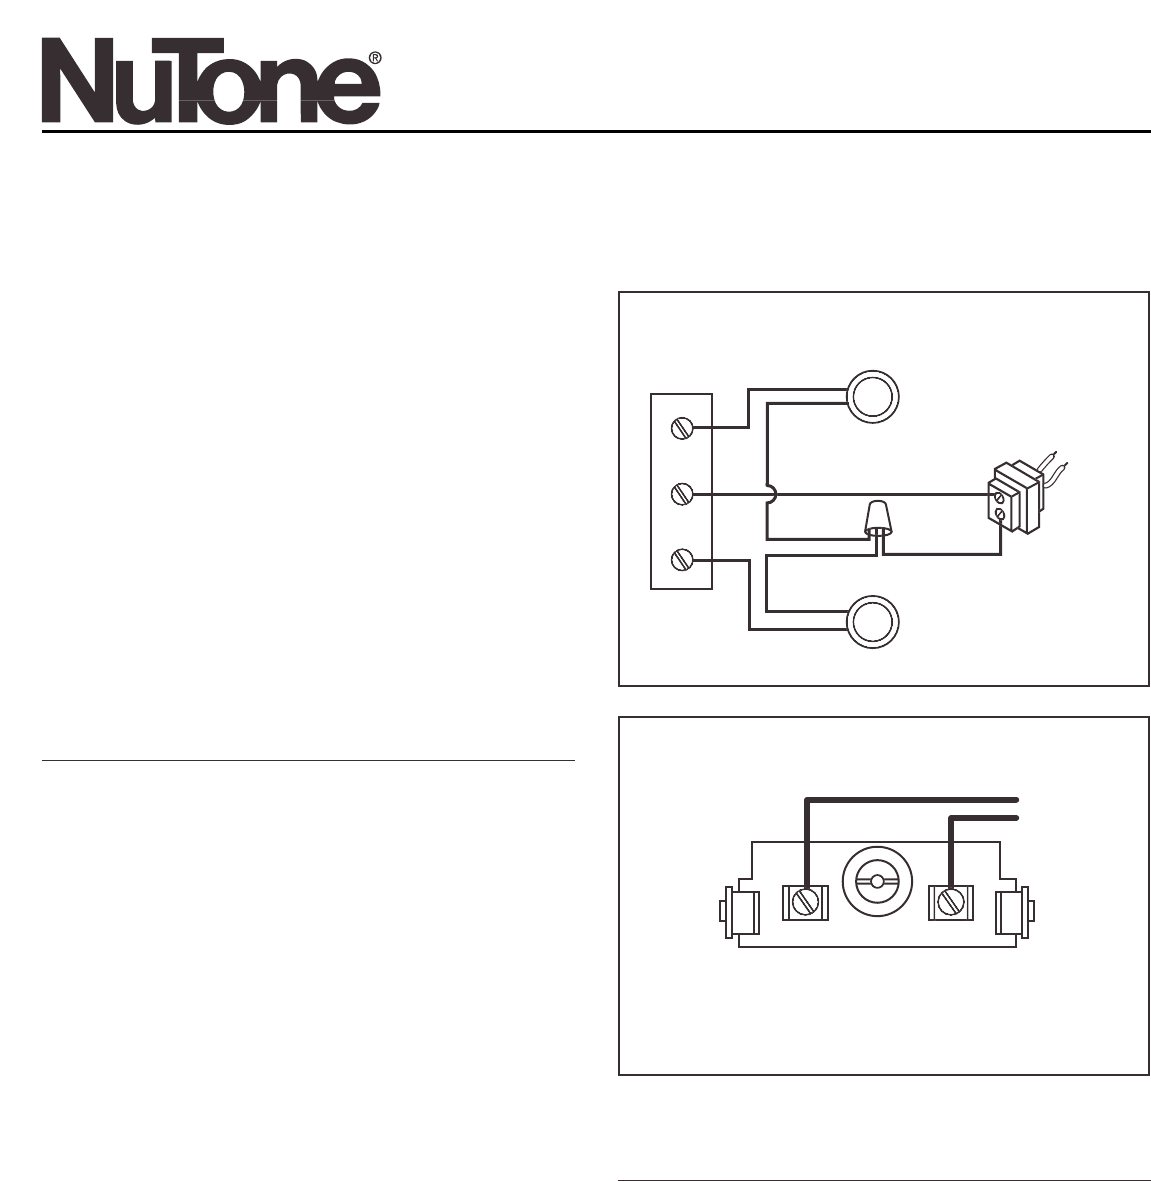 3913fb41 9112 40b1 be06 63c95f4b3cac bg1 nutone door lb 76 user guide manualsonline com nutone scovill intercom wiring diagram at readyjetset.co